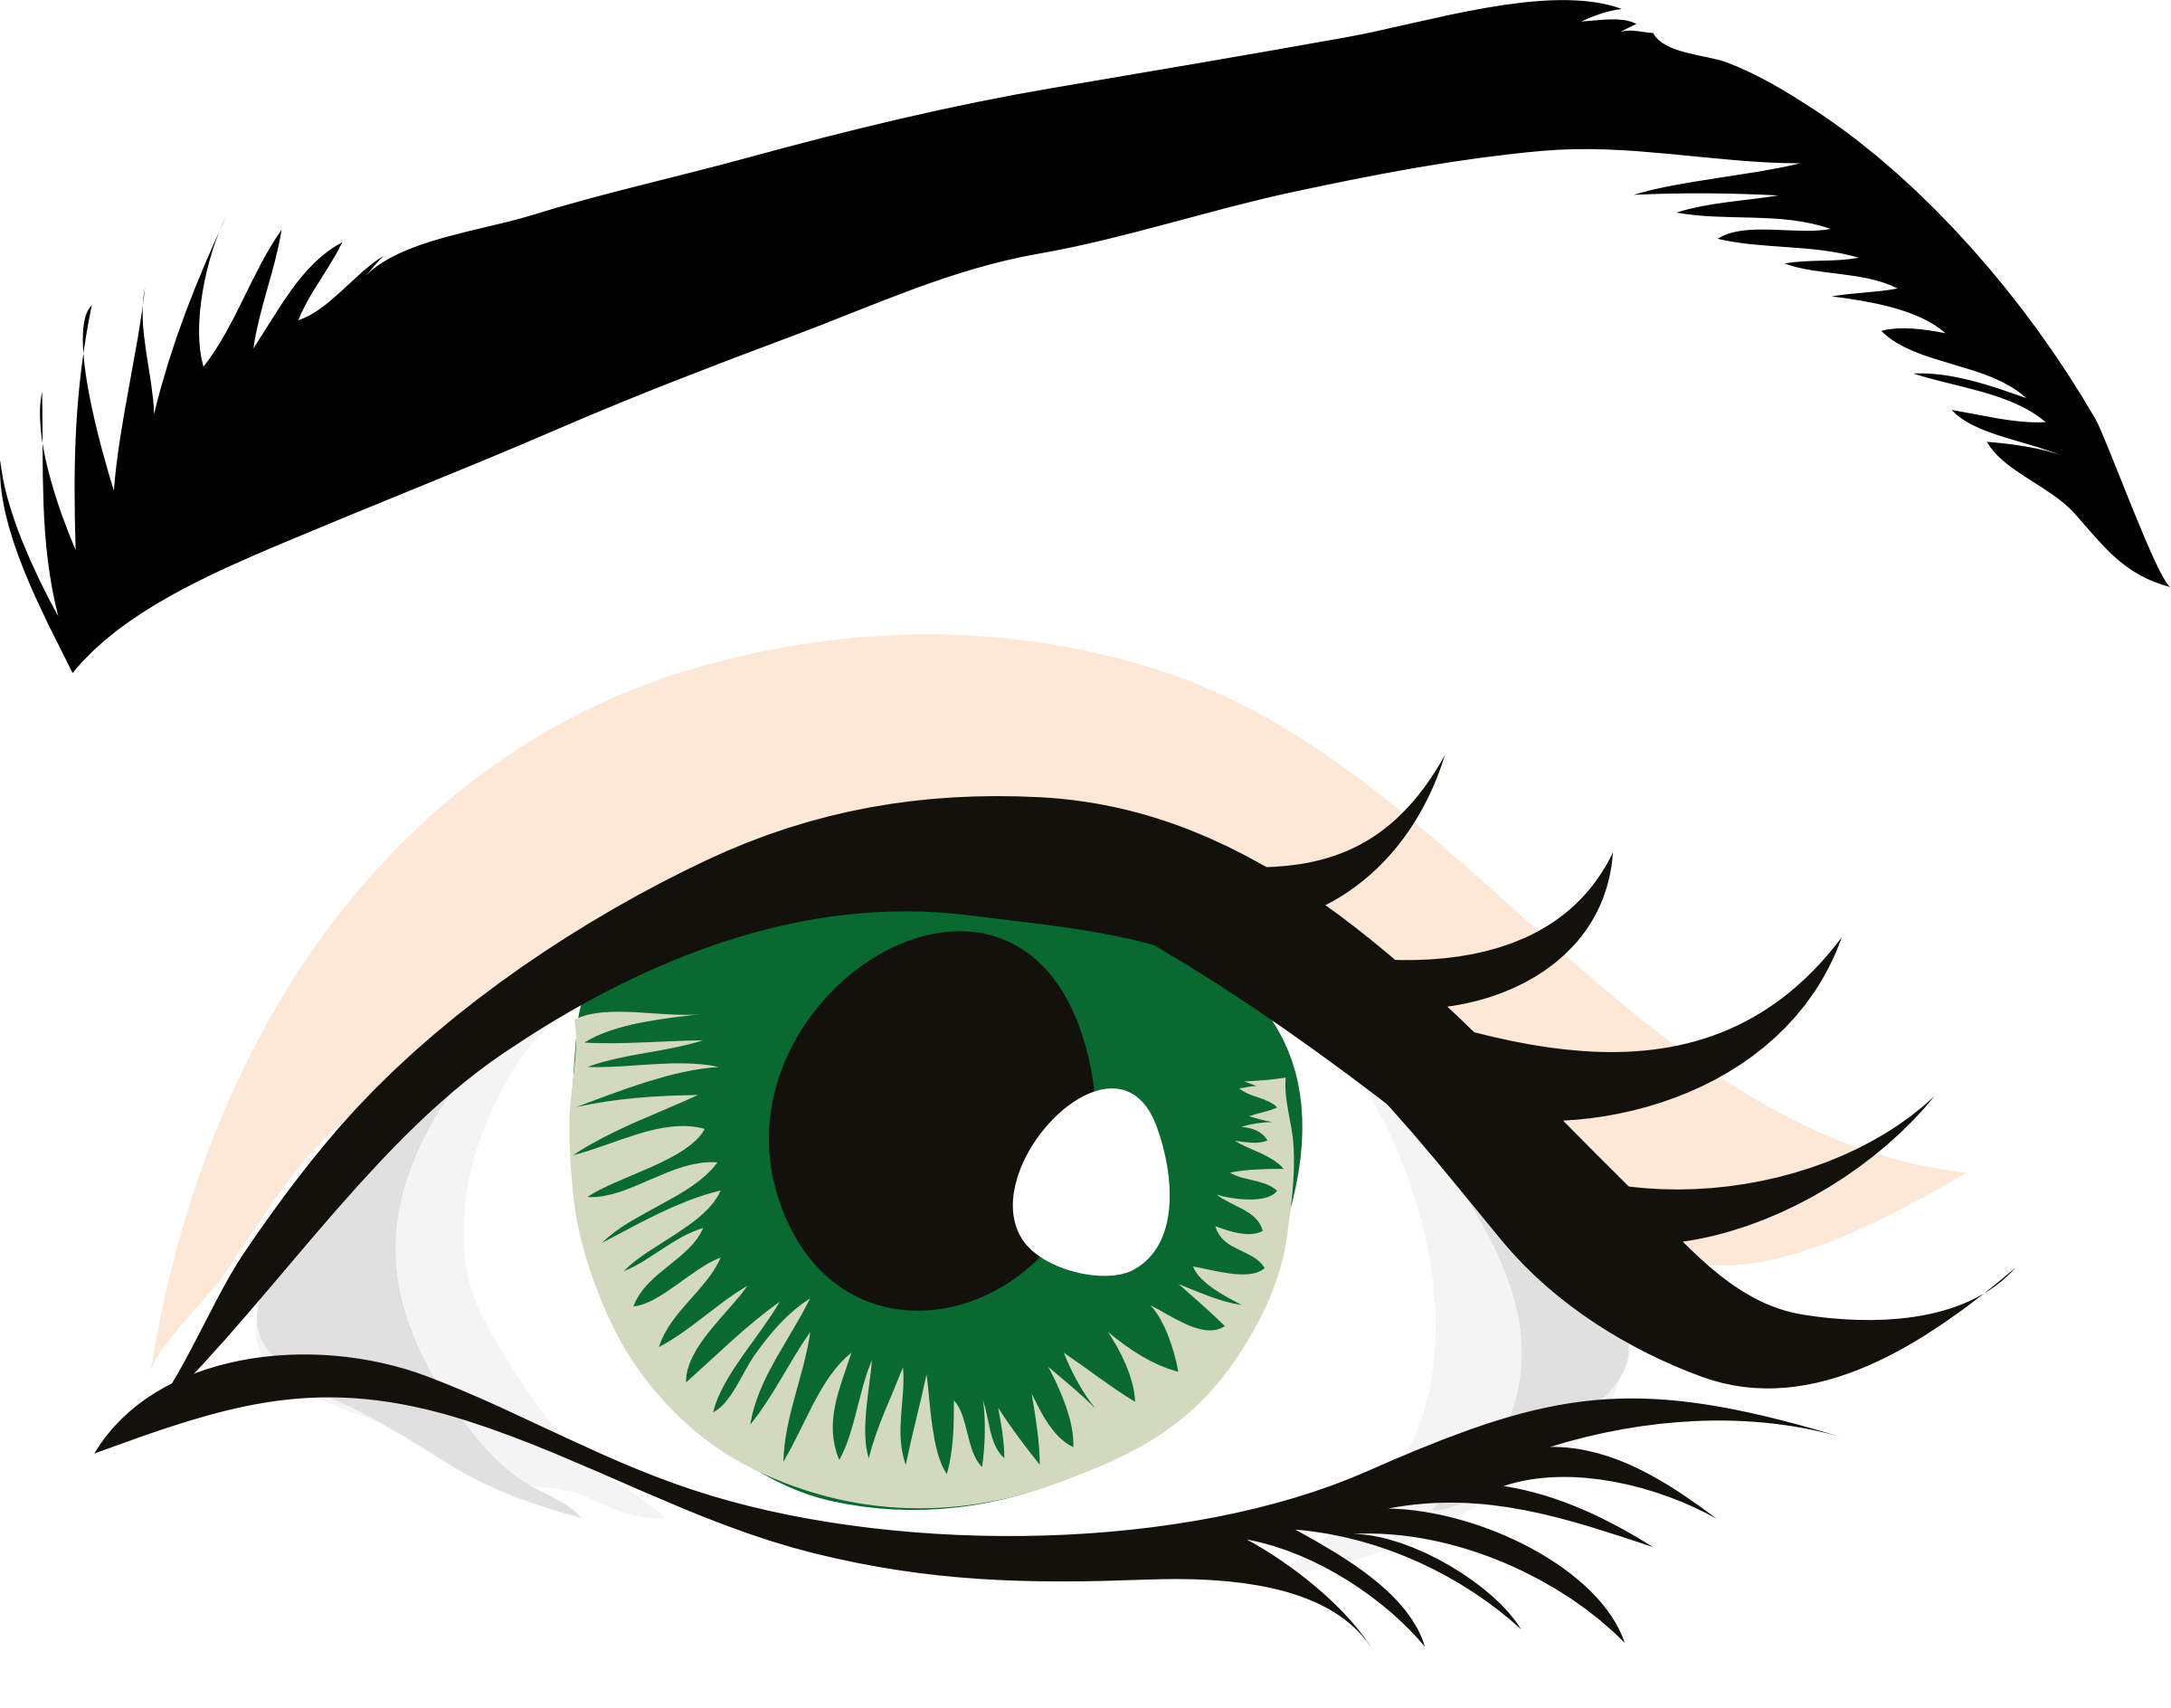 Eye color clipart clip art black and white library Human Eye Eye Color Clip Art - Eye Pupil 2 #329397 - Clipartimage.com clip art black and white library